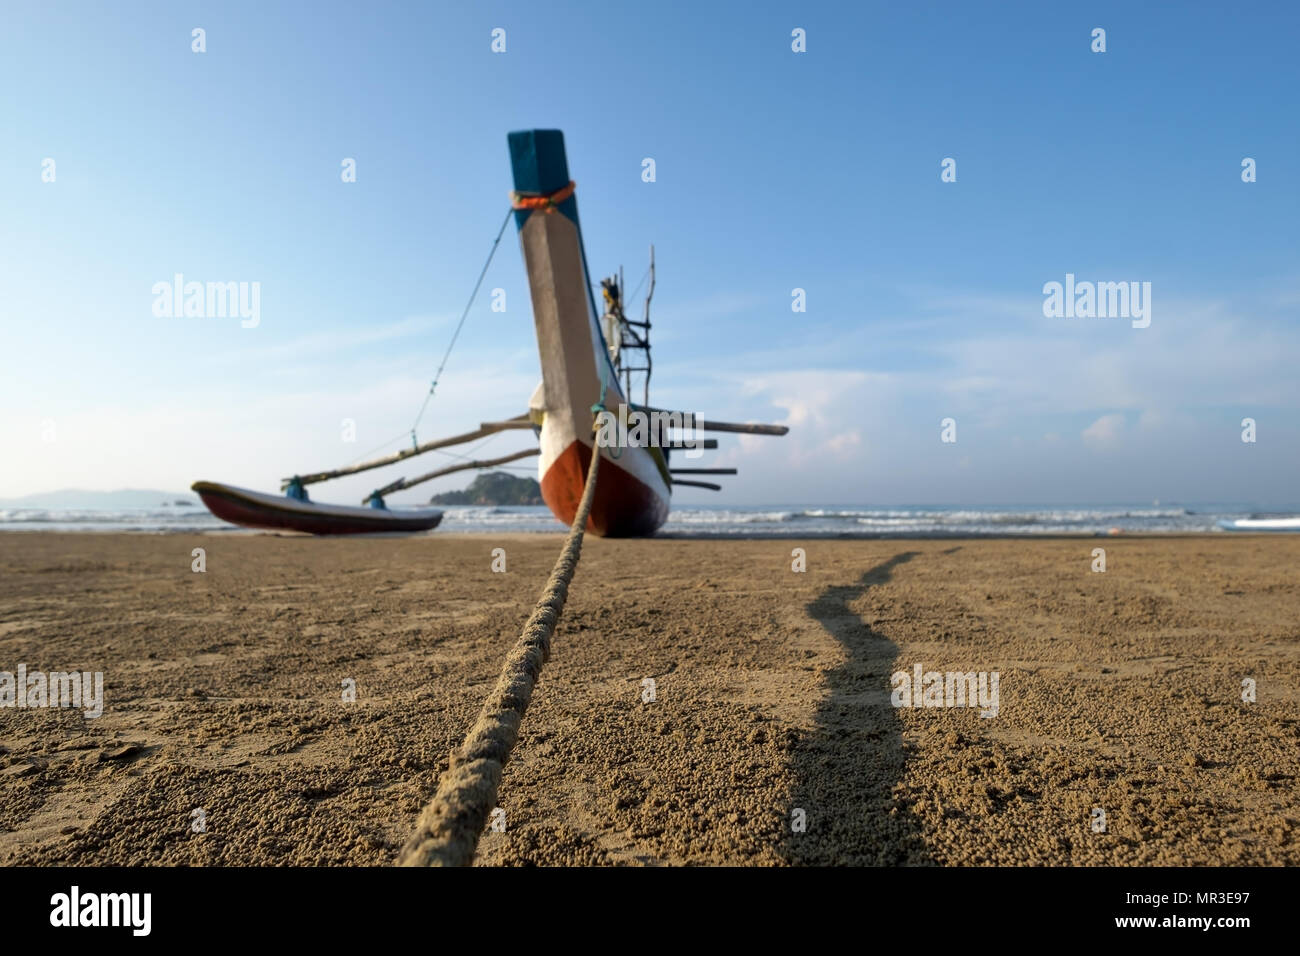 Sri Lankan traditional fishing catamarans. on sandy beach. Stock Photo